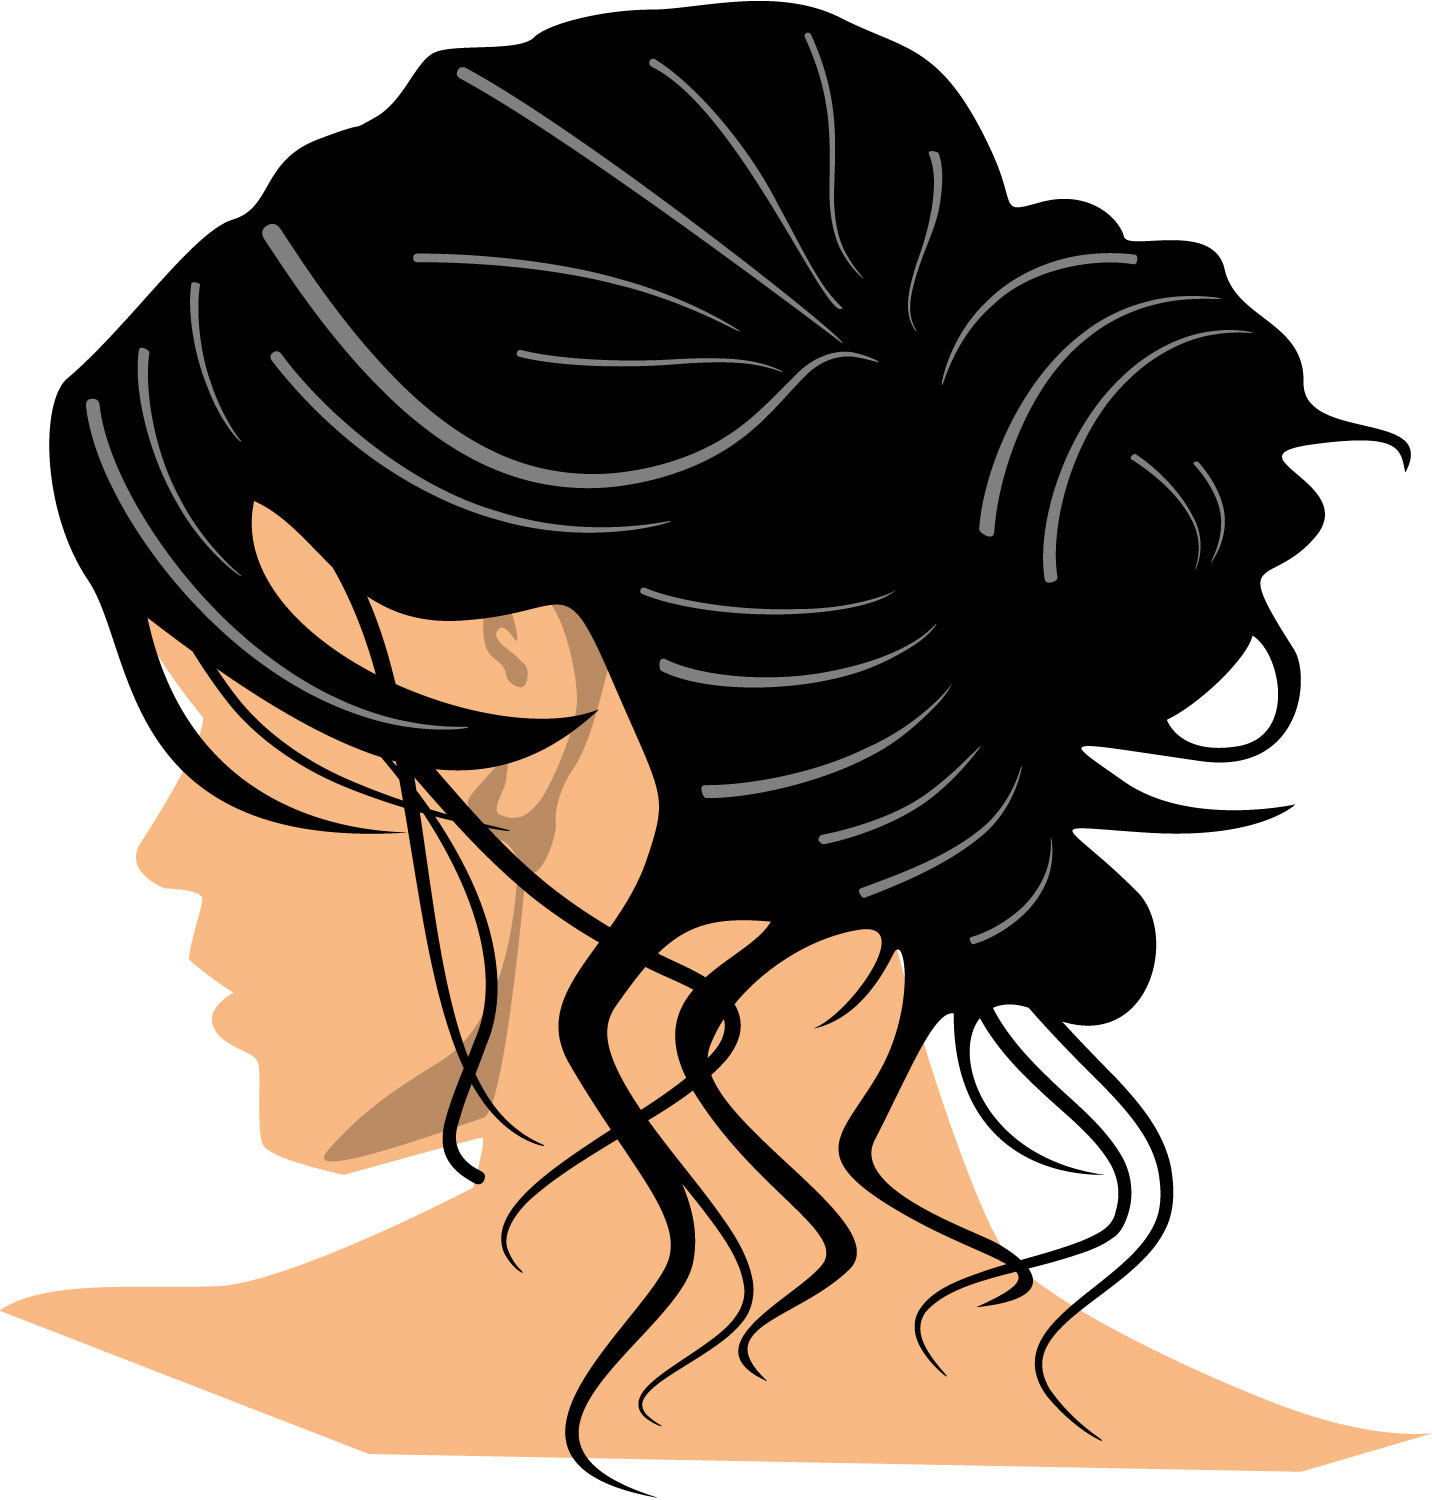 Clipart hair image clipart transparent library Best Hair Clipart #17234 - Clipartion.com clipart transparent library